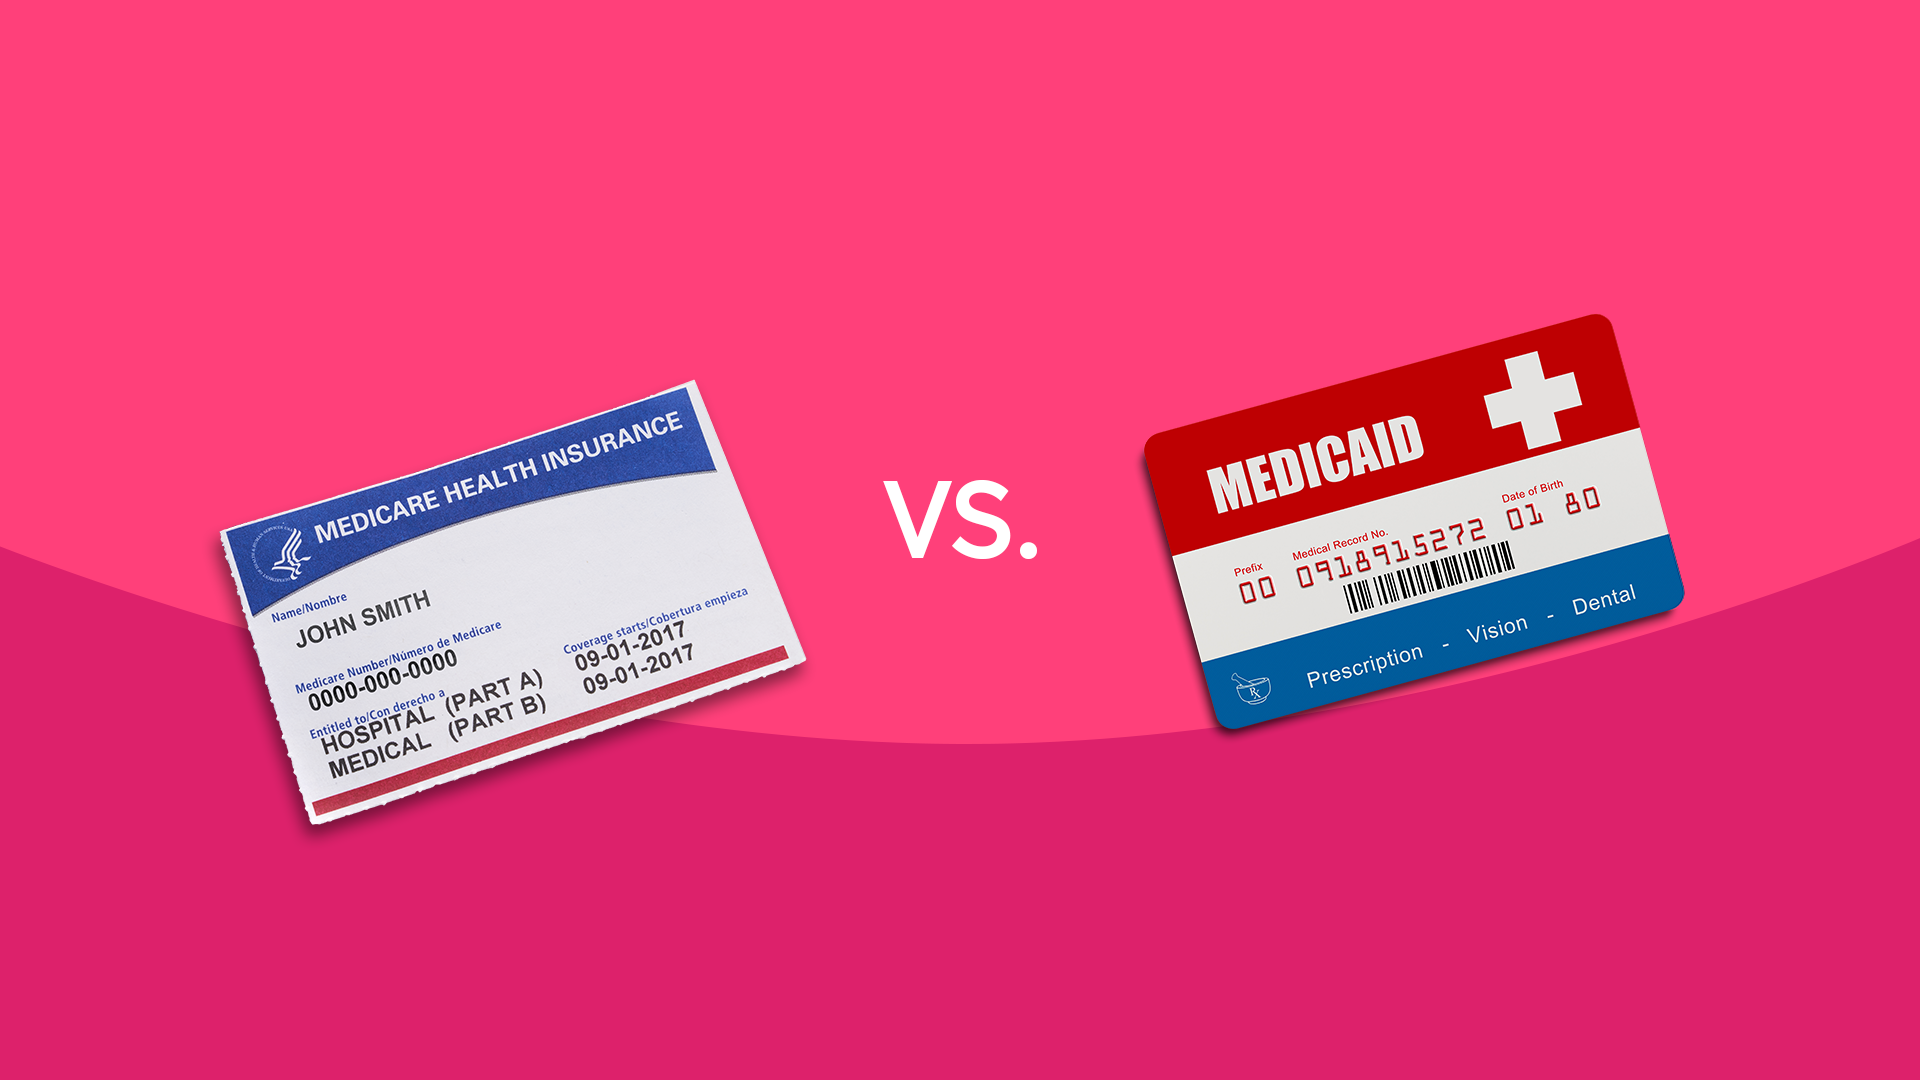 Medicare vs. Medicaid: What are the differences?